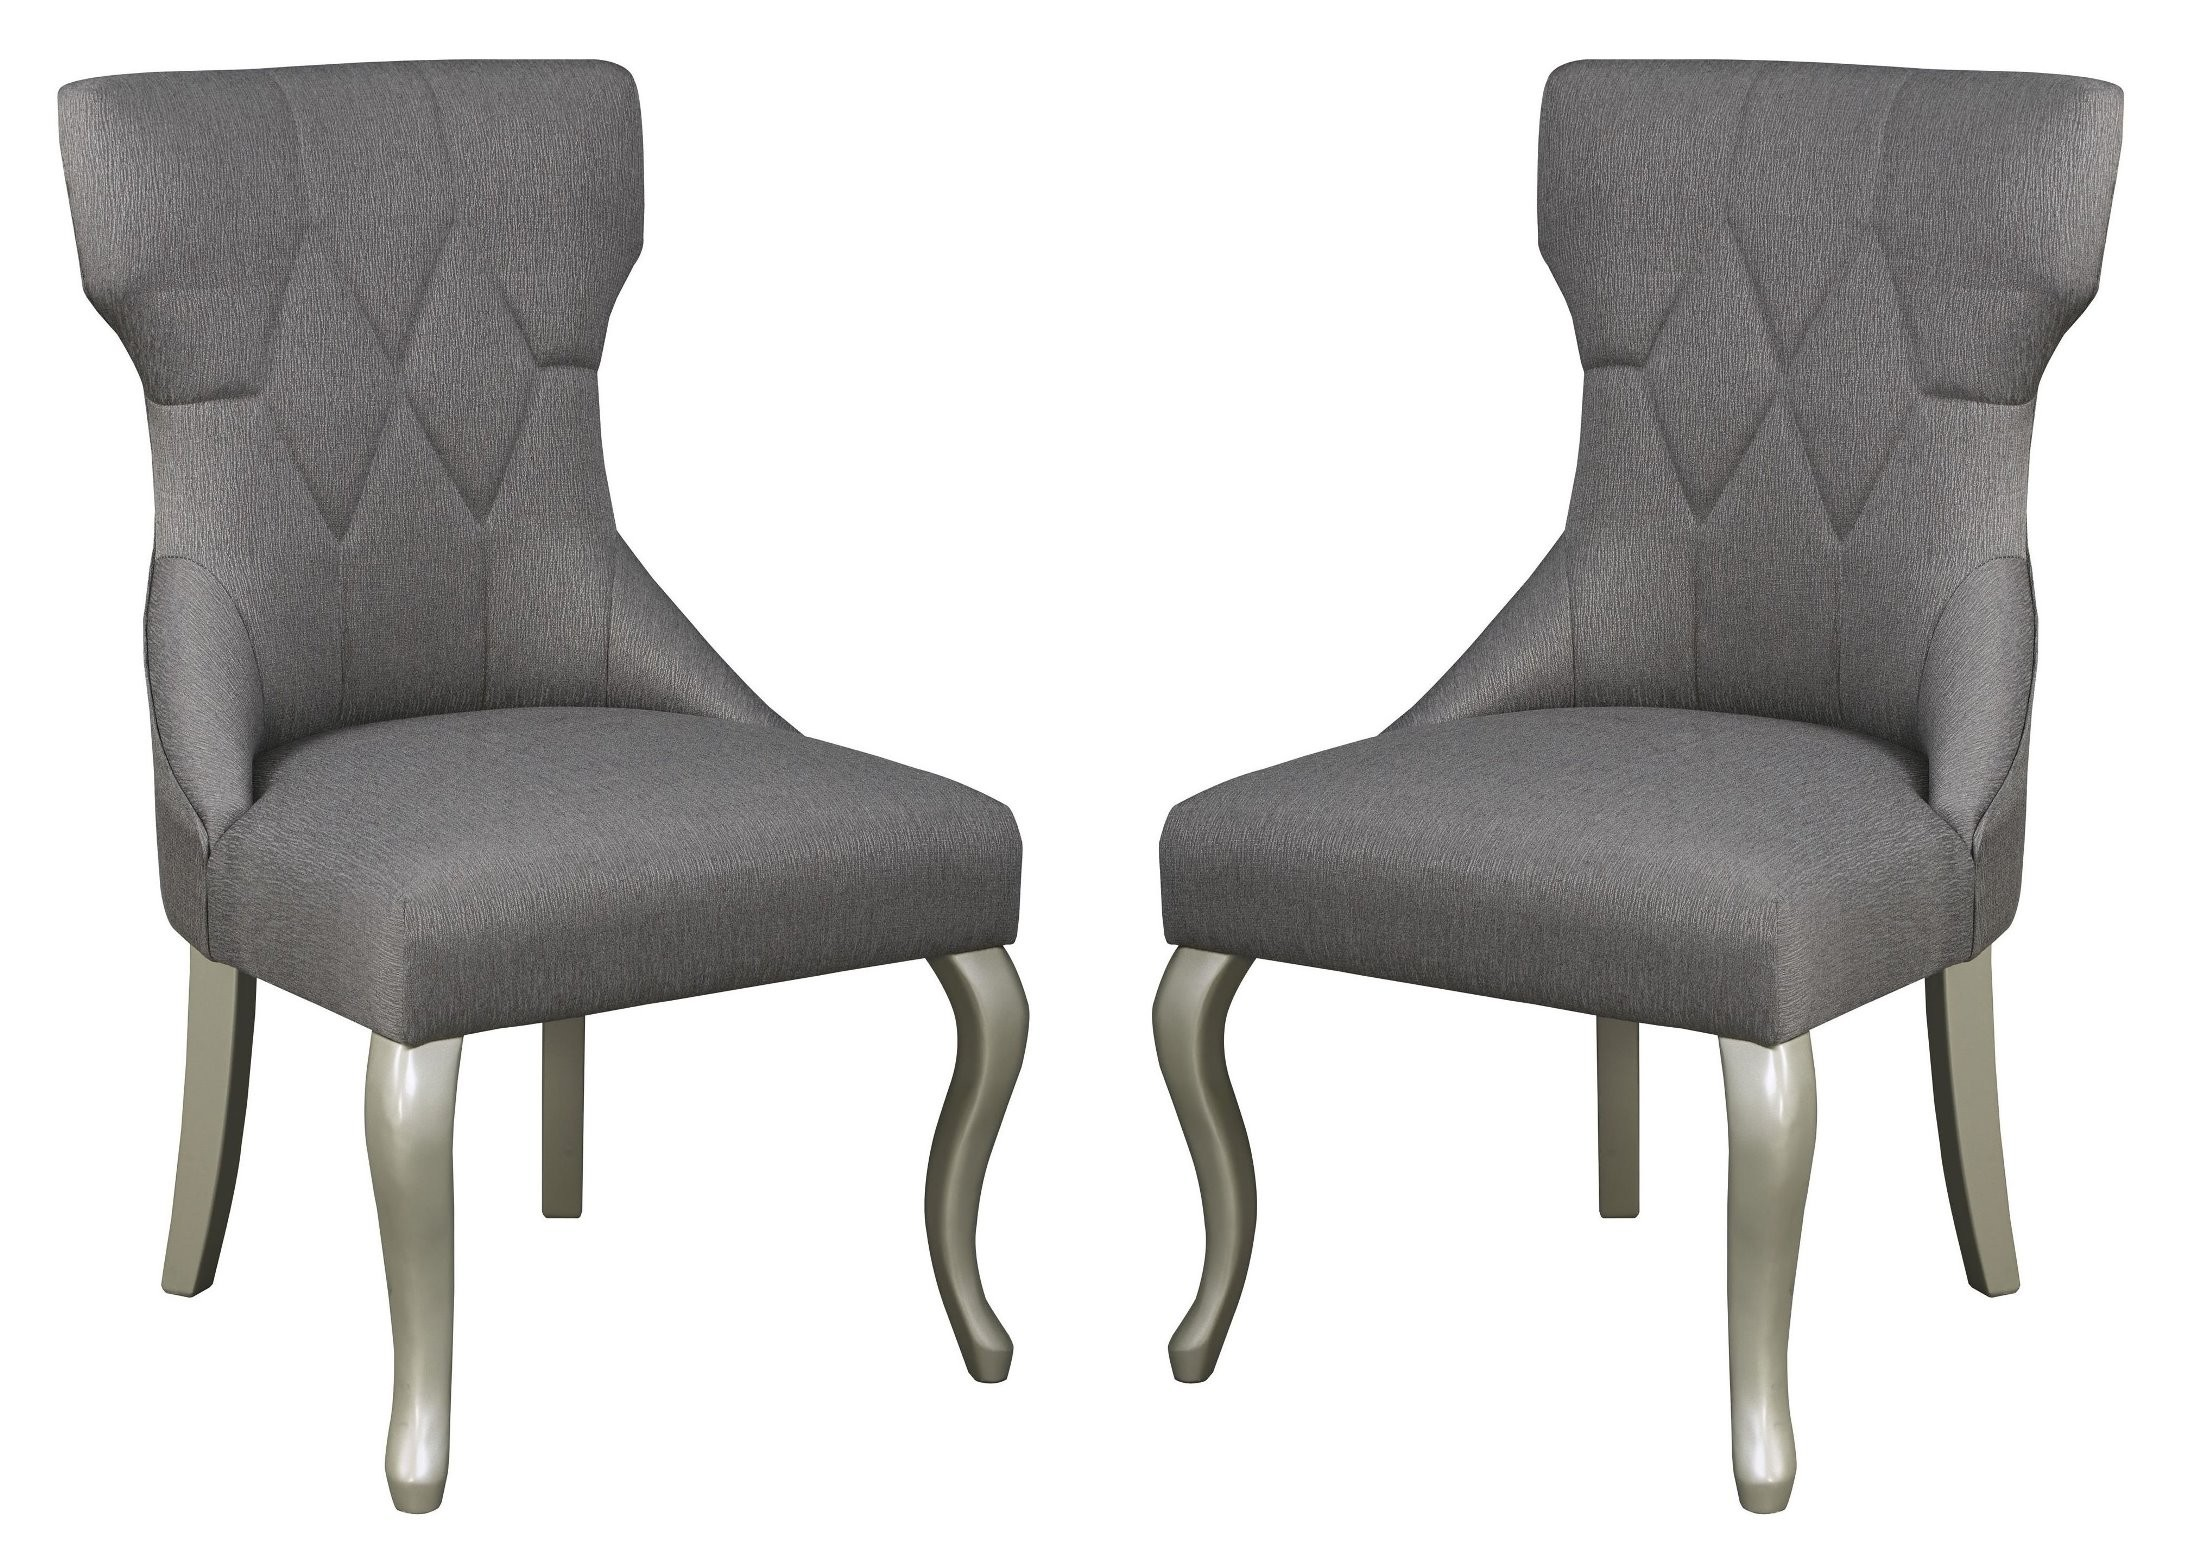 Captivating Coralayne Dark Gray Dining Upholstered Side Chair Set Of 2